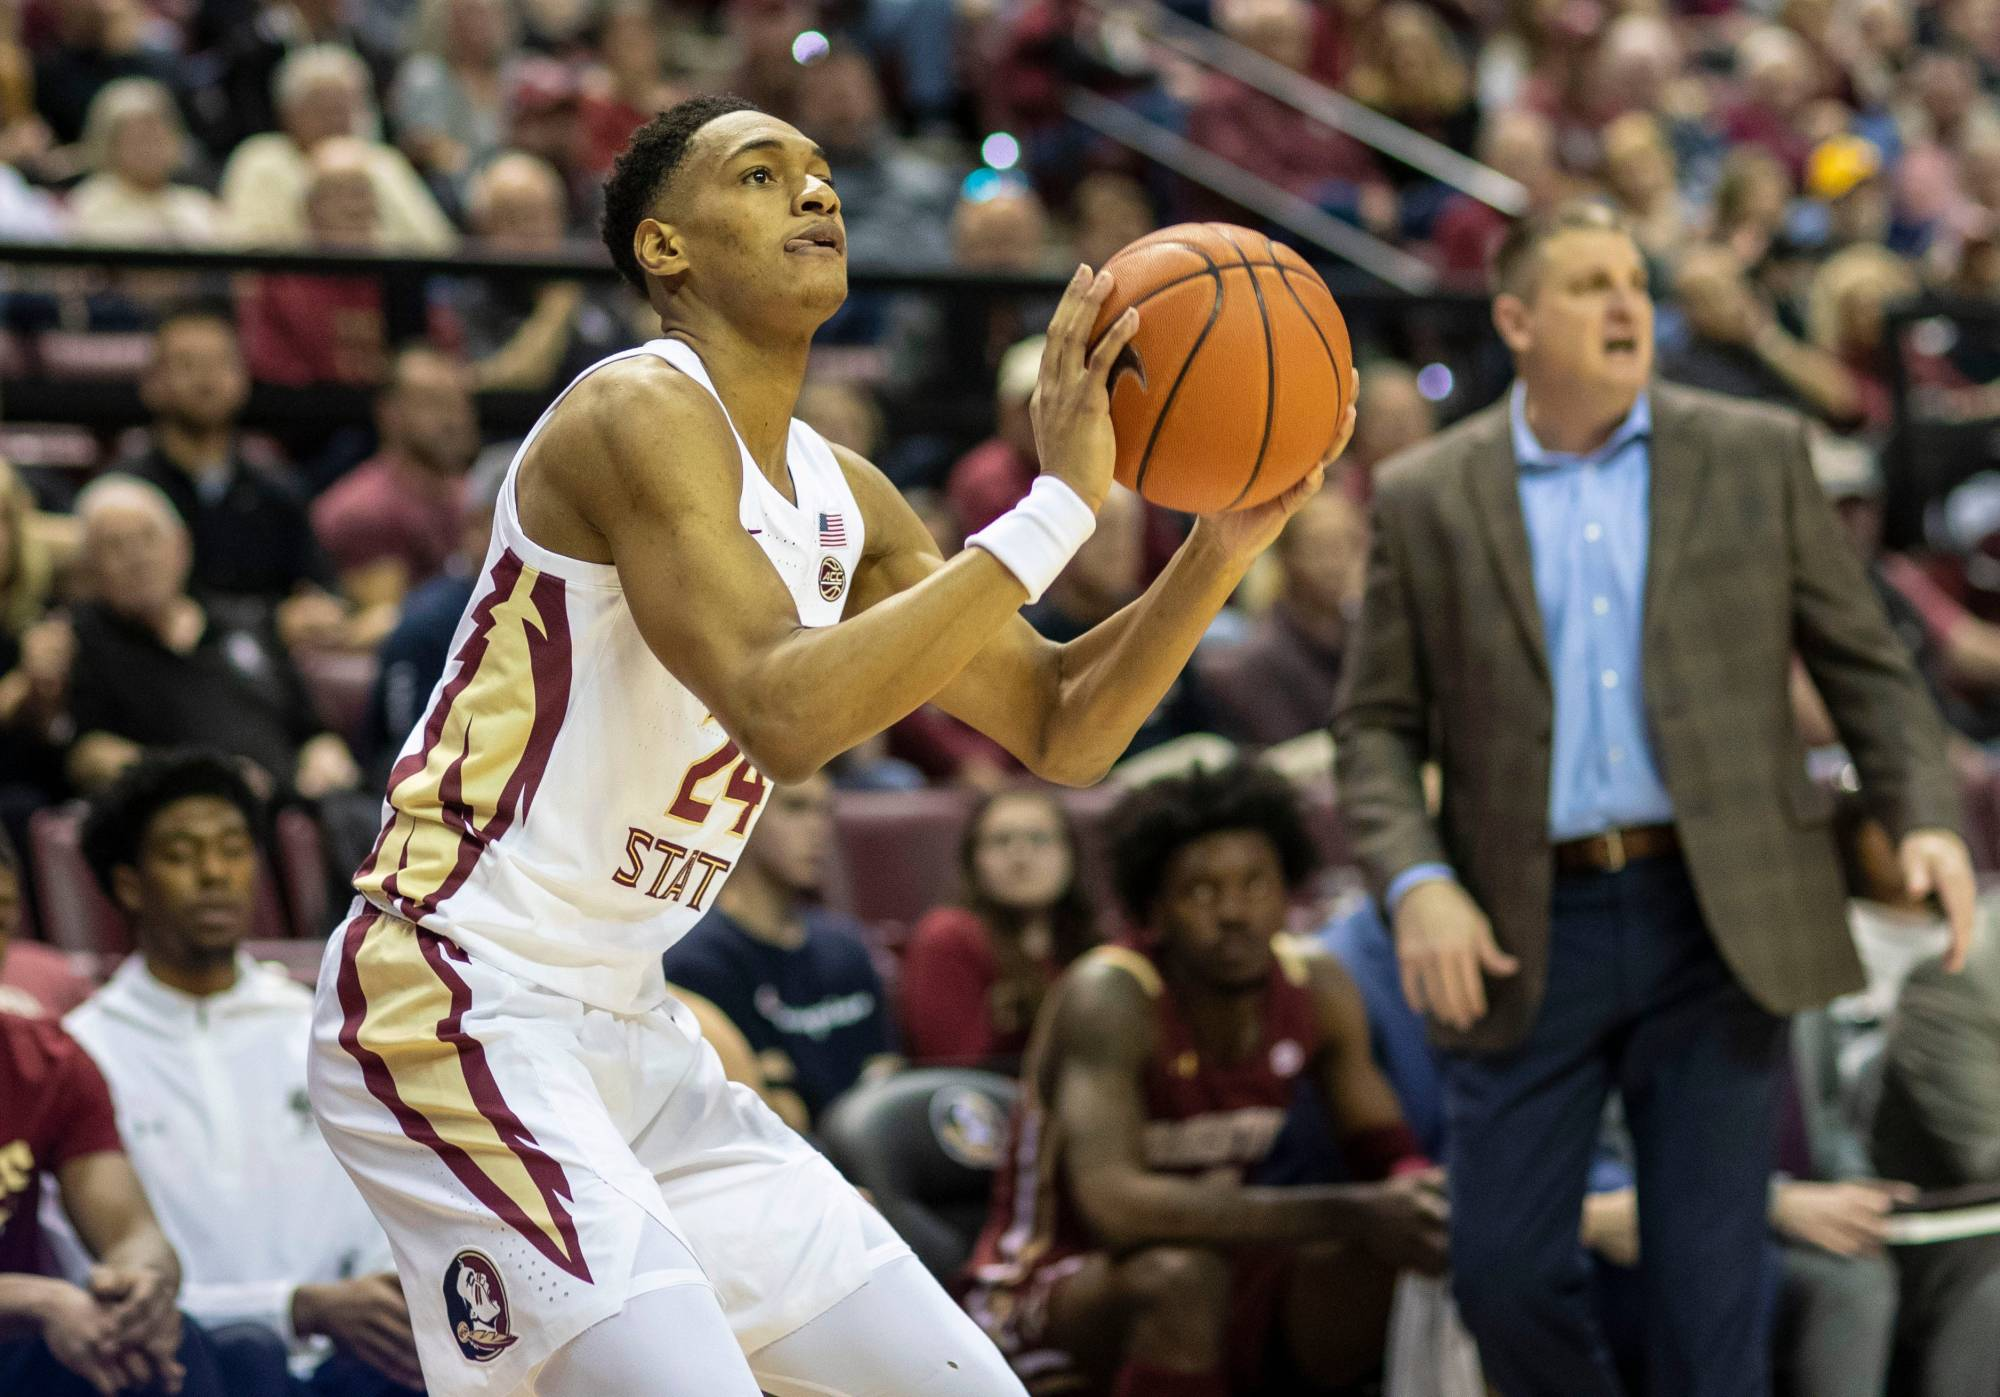 Florida State Seminoles guard Devin Vassell (24) lines up his three point shot. The Florida State Seminoles beat the Boston College Eagles 80-62, Saturday, March 7, 2020. The Seminoles clinched the ACC regular season title.